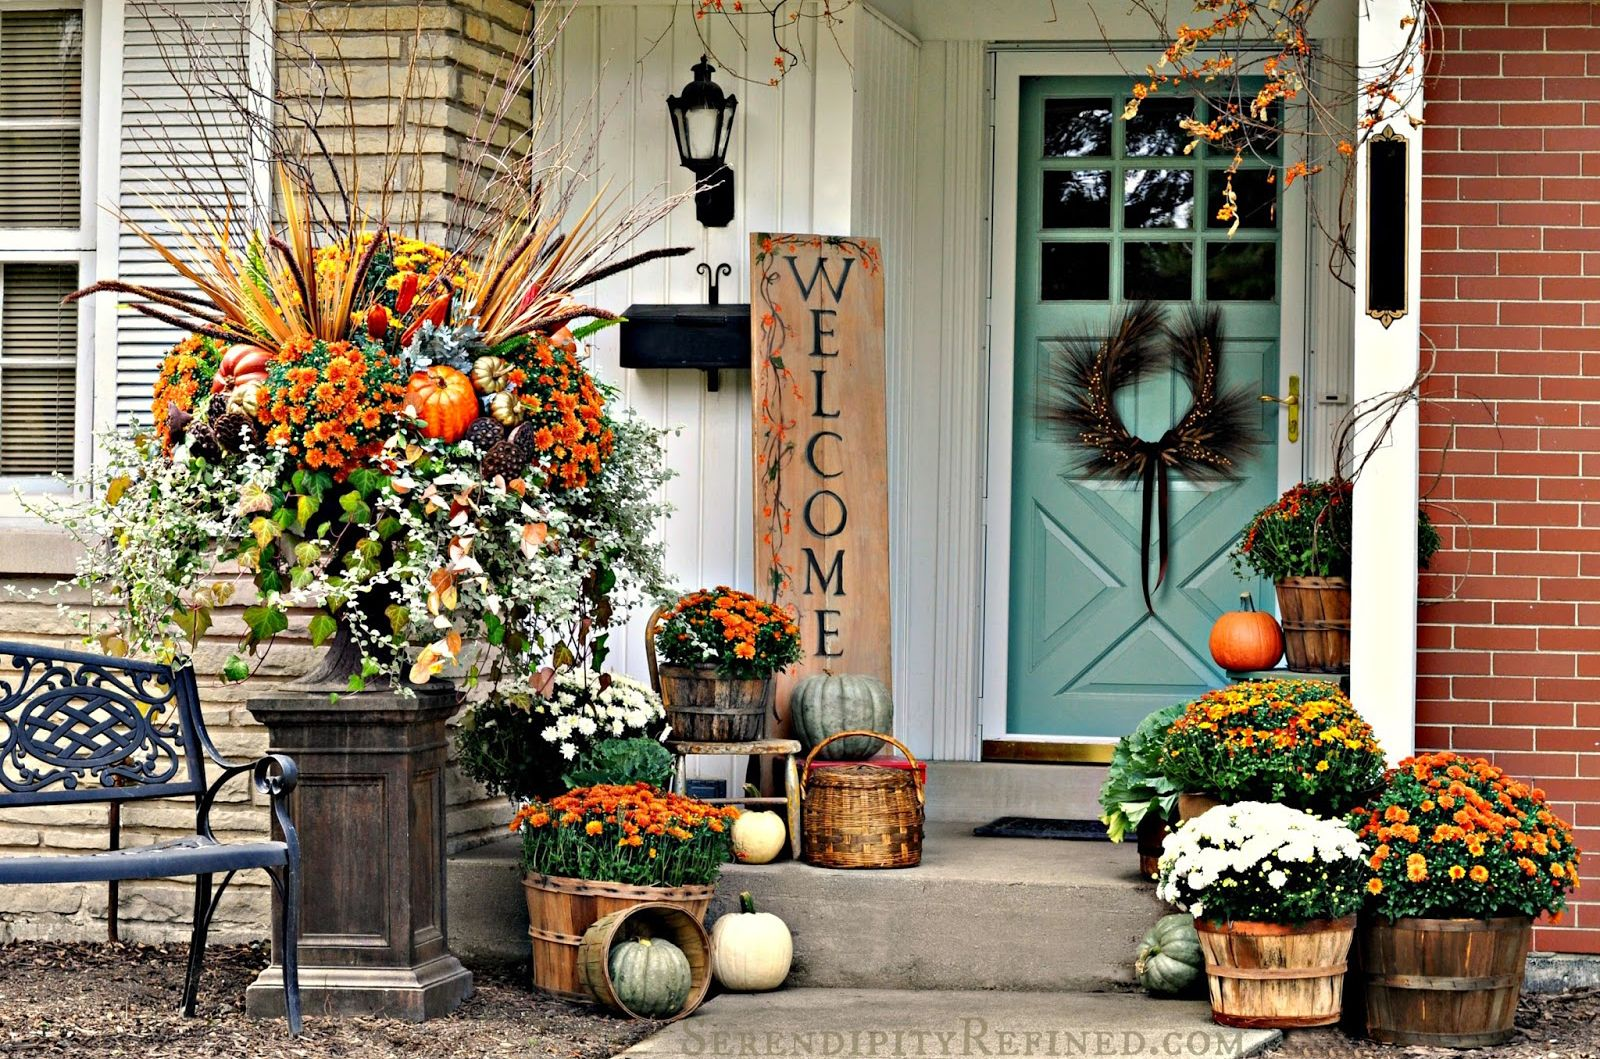 Porch decorated for the fall with orange and white mum flowers pumpkins and a welcome sign.